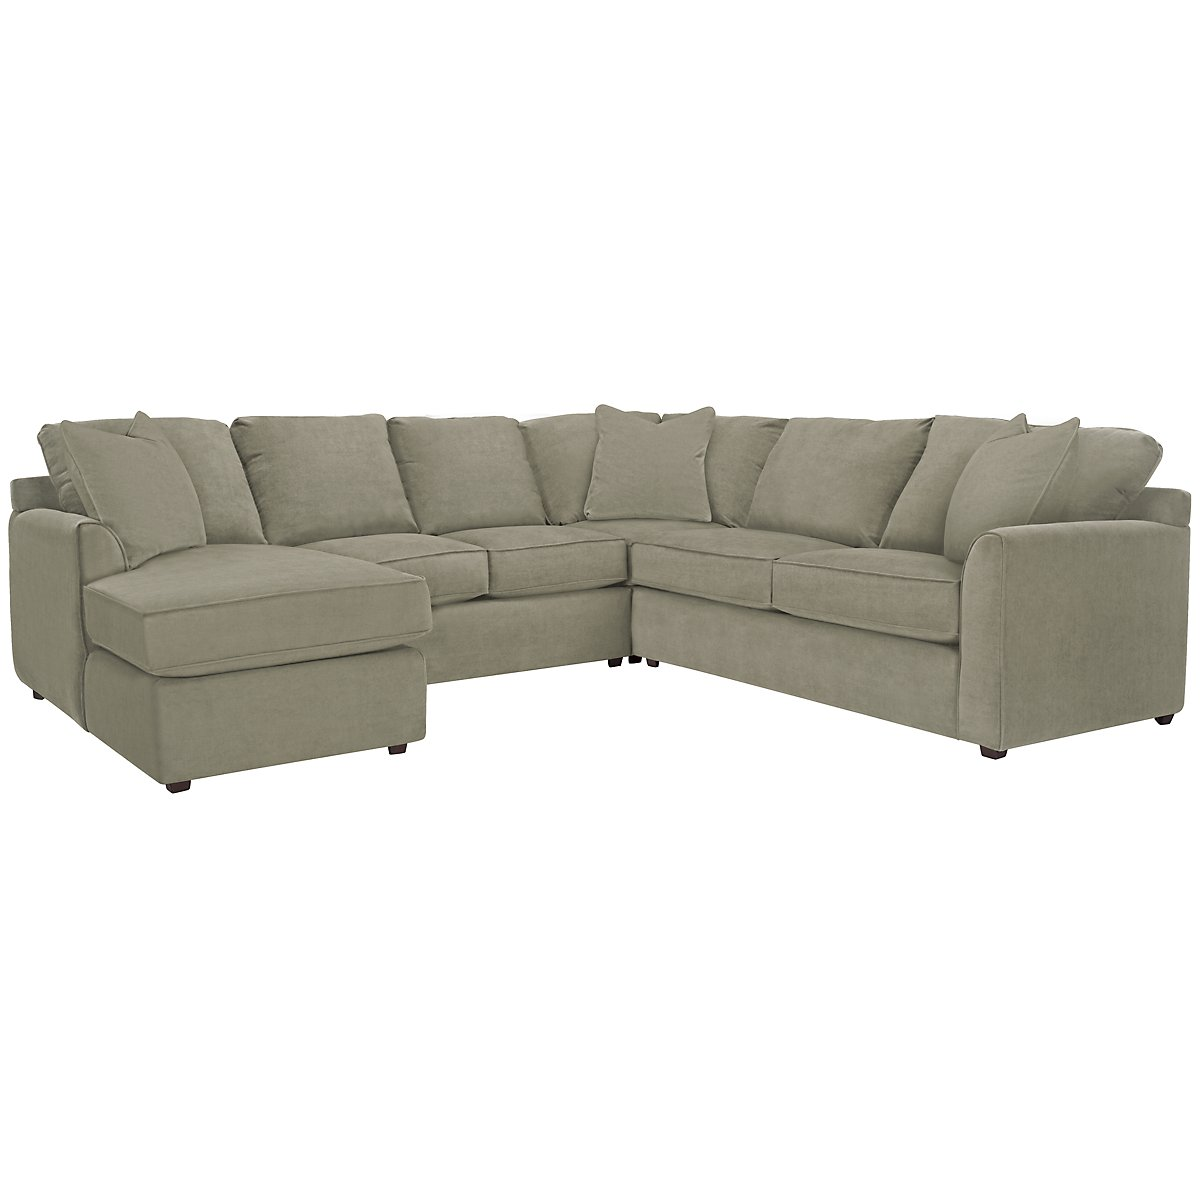 Express3 Light Green Microfiber Small Left Chaise Sectional